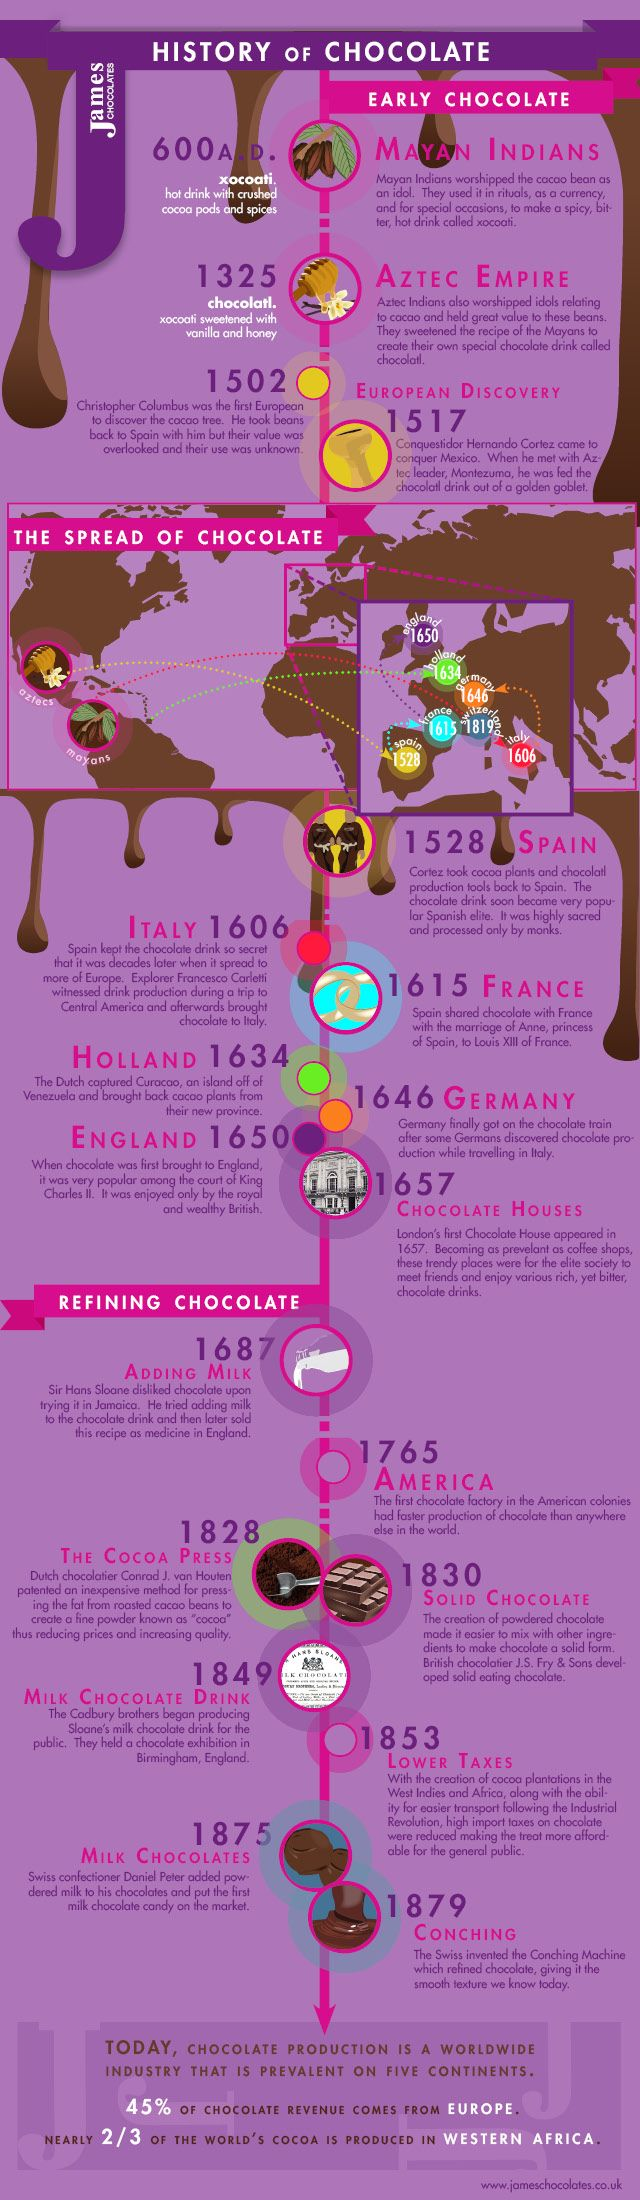 History of chocolate infographic / via @Siilversuun